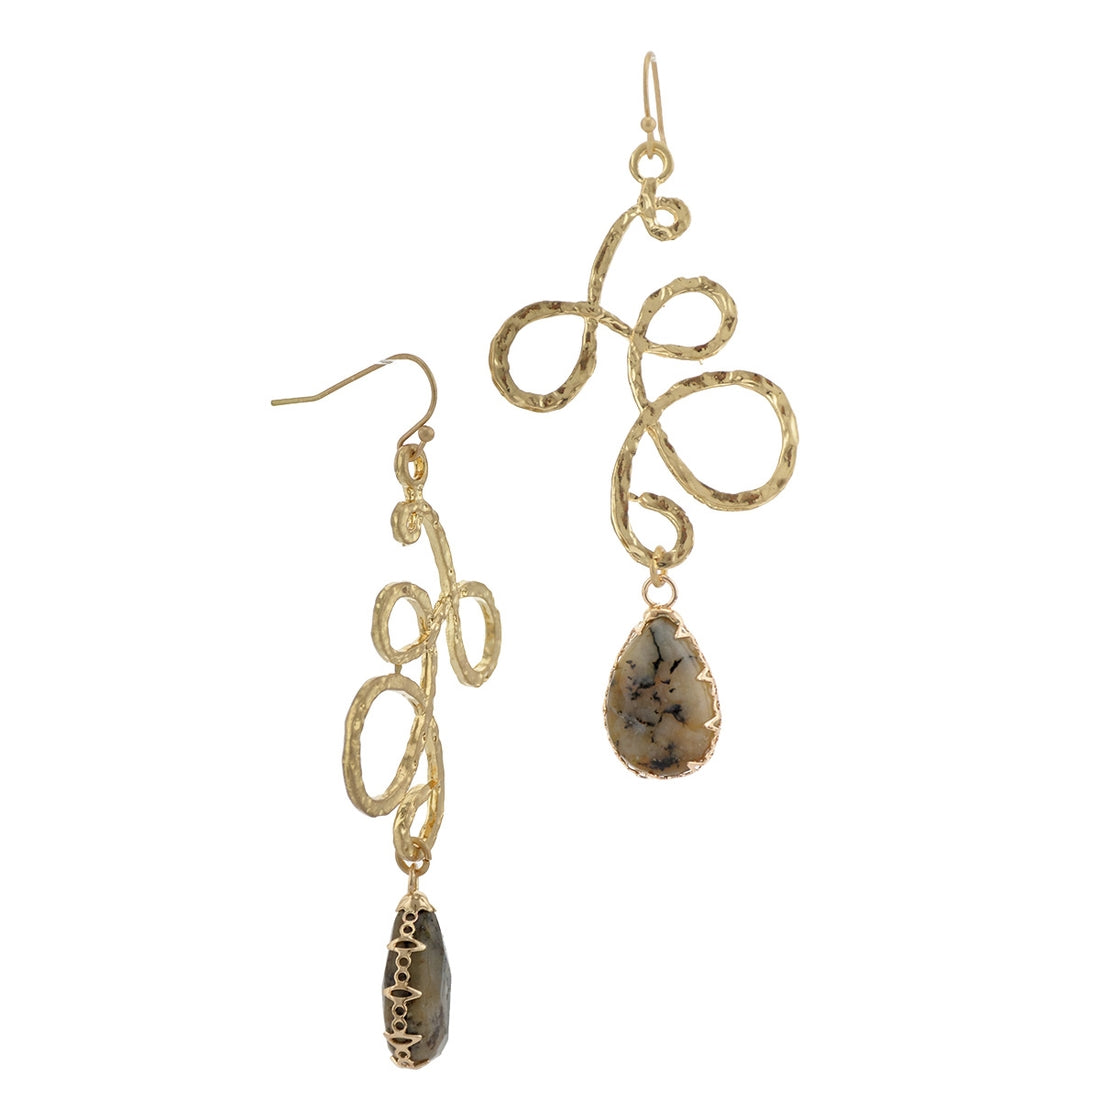 Worn Gold Hammered Loops Stone Drop-Fishhook Earrings - LURE Boutique